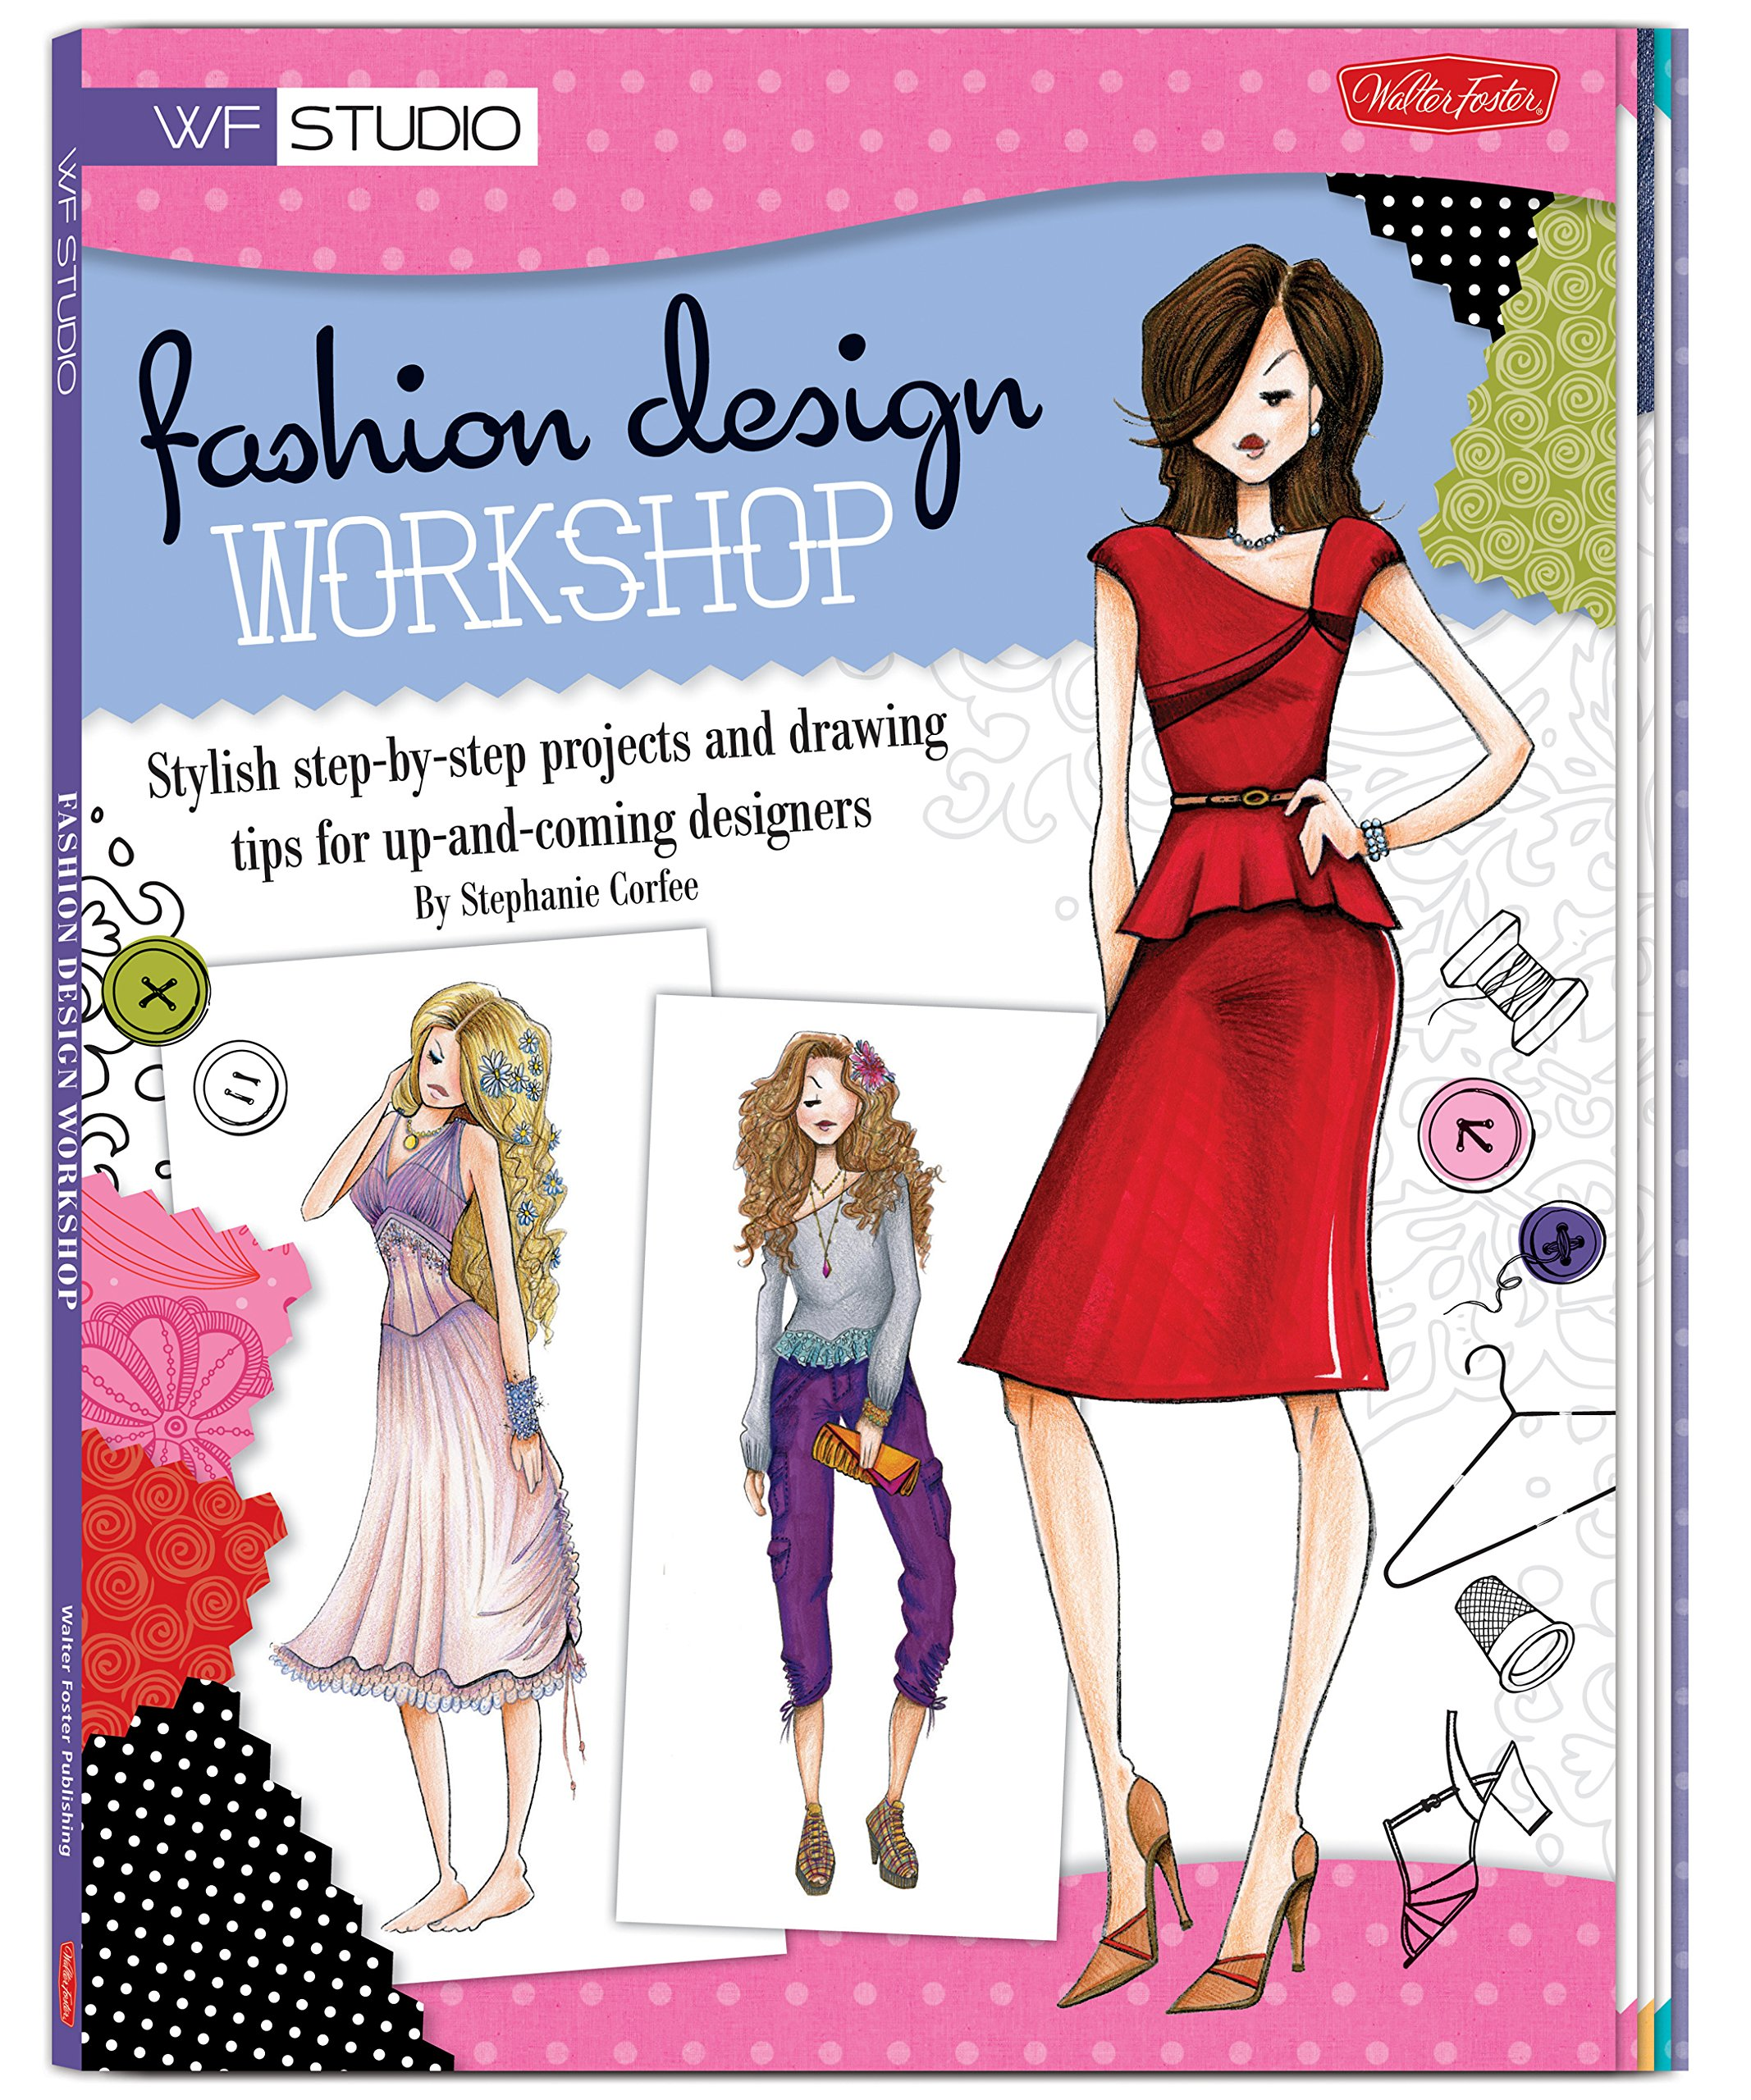 Download Fashion Design Workshop: Stylish step-by-step projects and drawing tips for up-and-coming designers (Walter Foster Studio) ebook